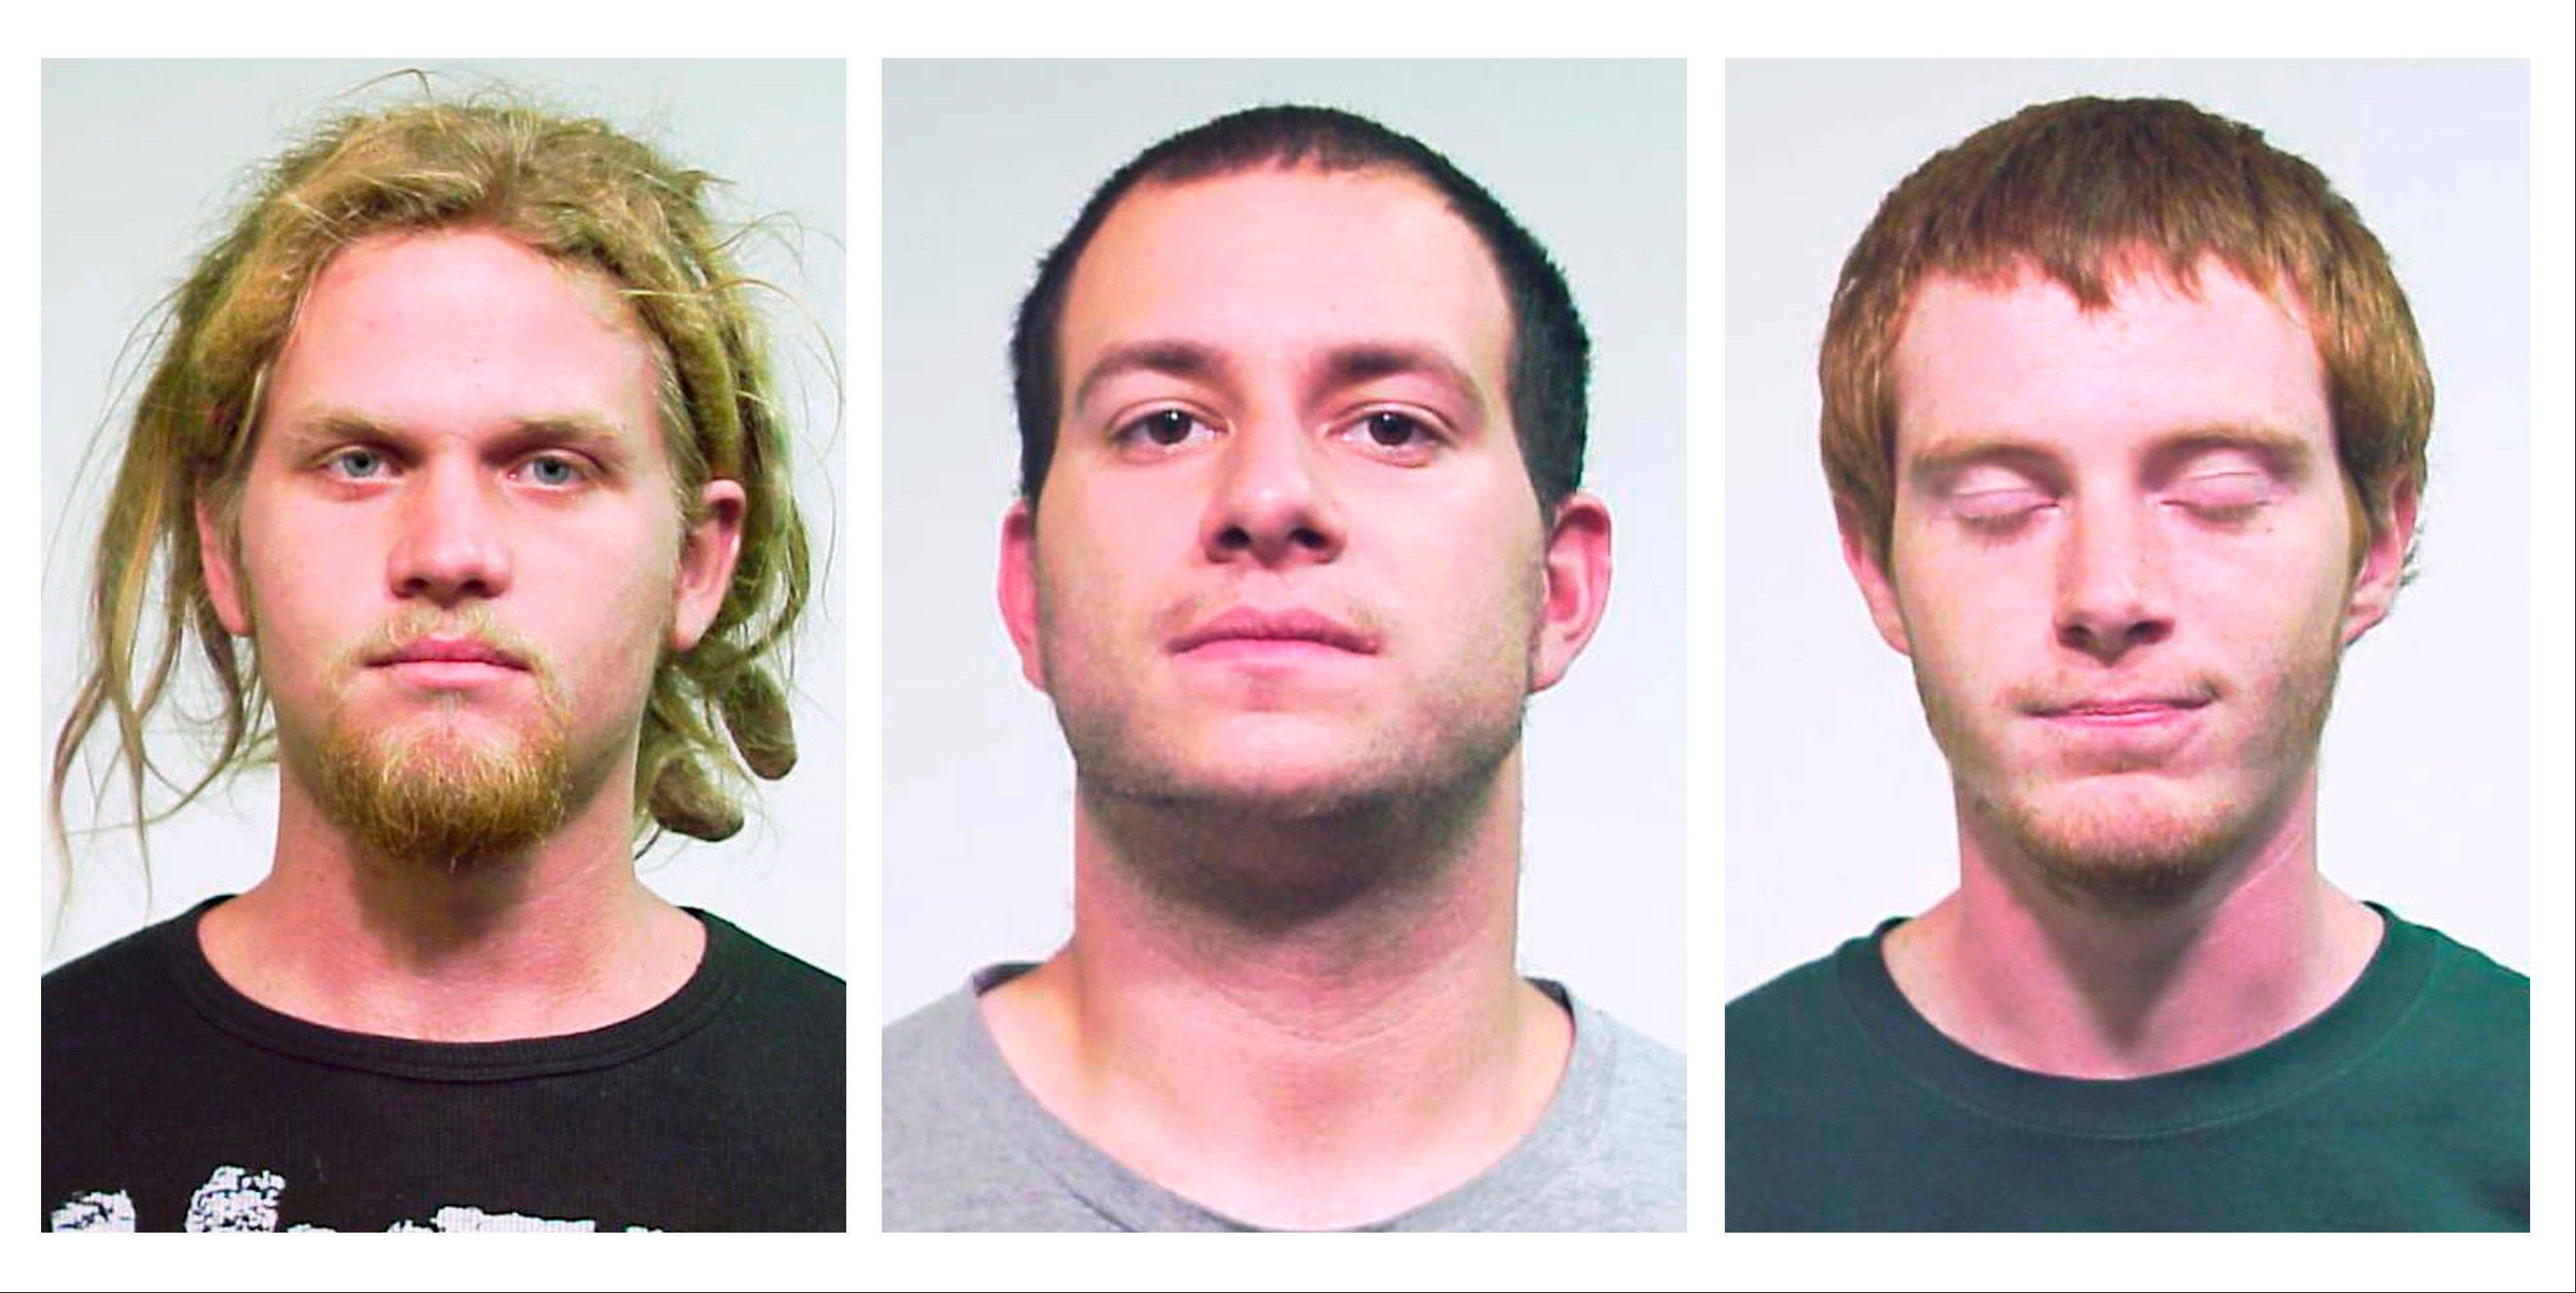 Brent Vincent Betterly, from left, Jared Chase and Brian Church are charged with conspiracy to commit terrorism and providing material support for terrorism.